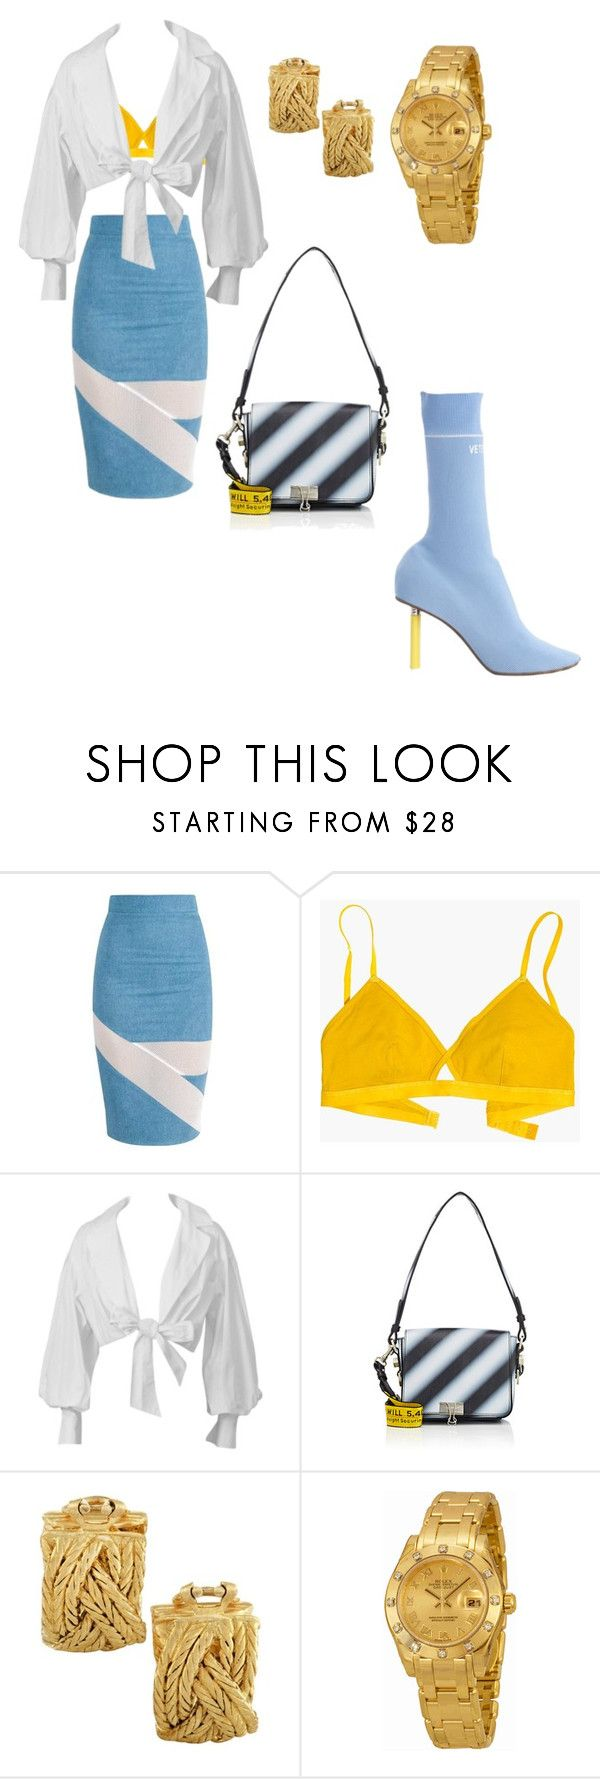 """🔦SHINING🔦"" by chanelgholson ❤ liked on Polyvore featuring Madewell, Montana, Off-White, Buccellati, Rolex, Vetements, Blue, Womens, offwhite and vetements"